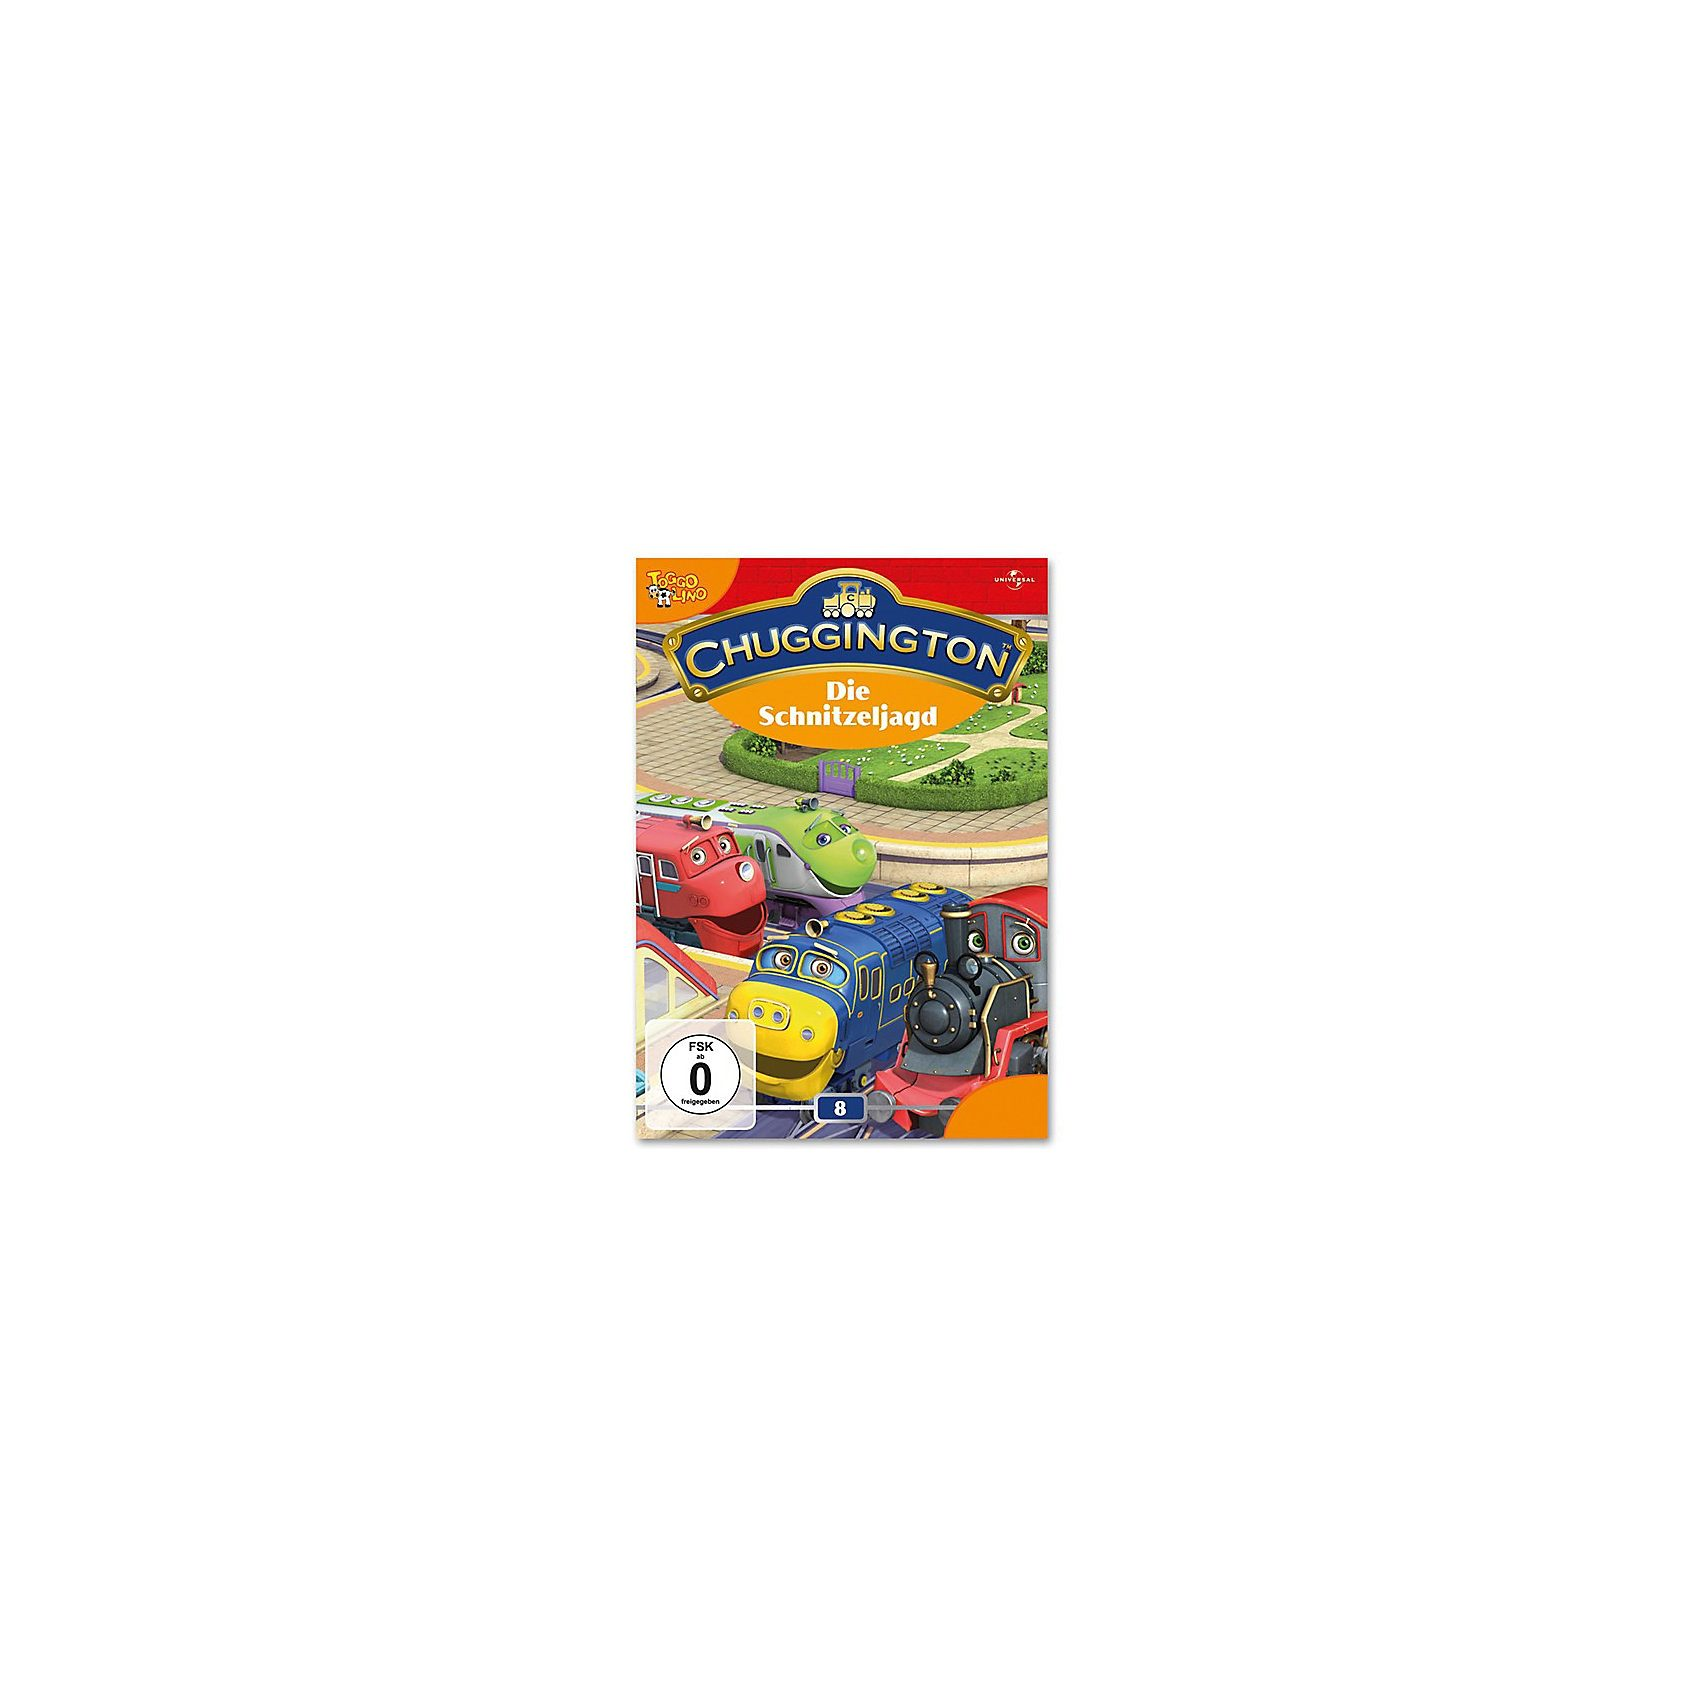 Universal DVD Chuggington 08